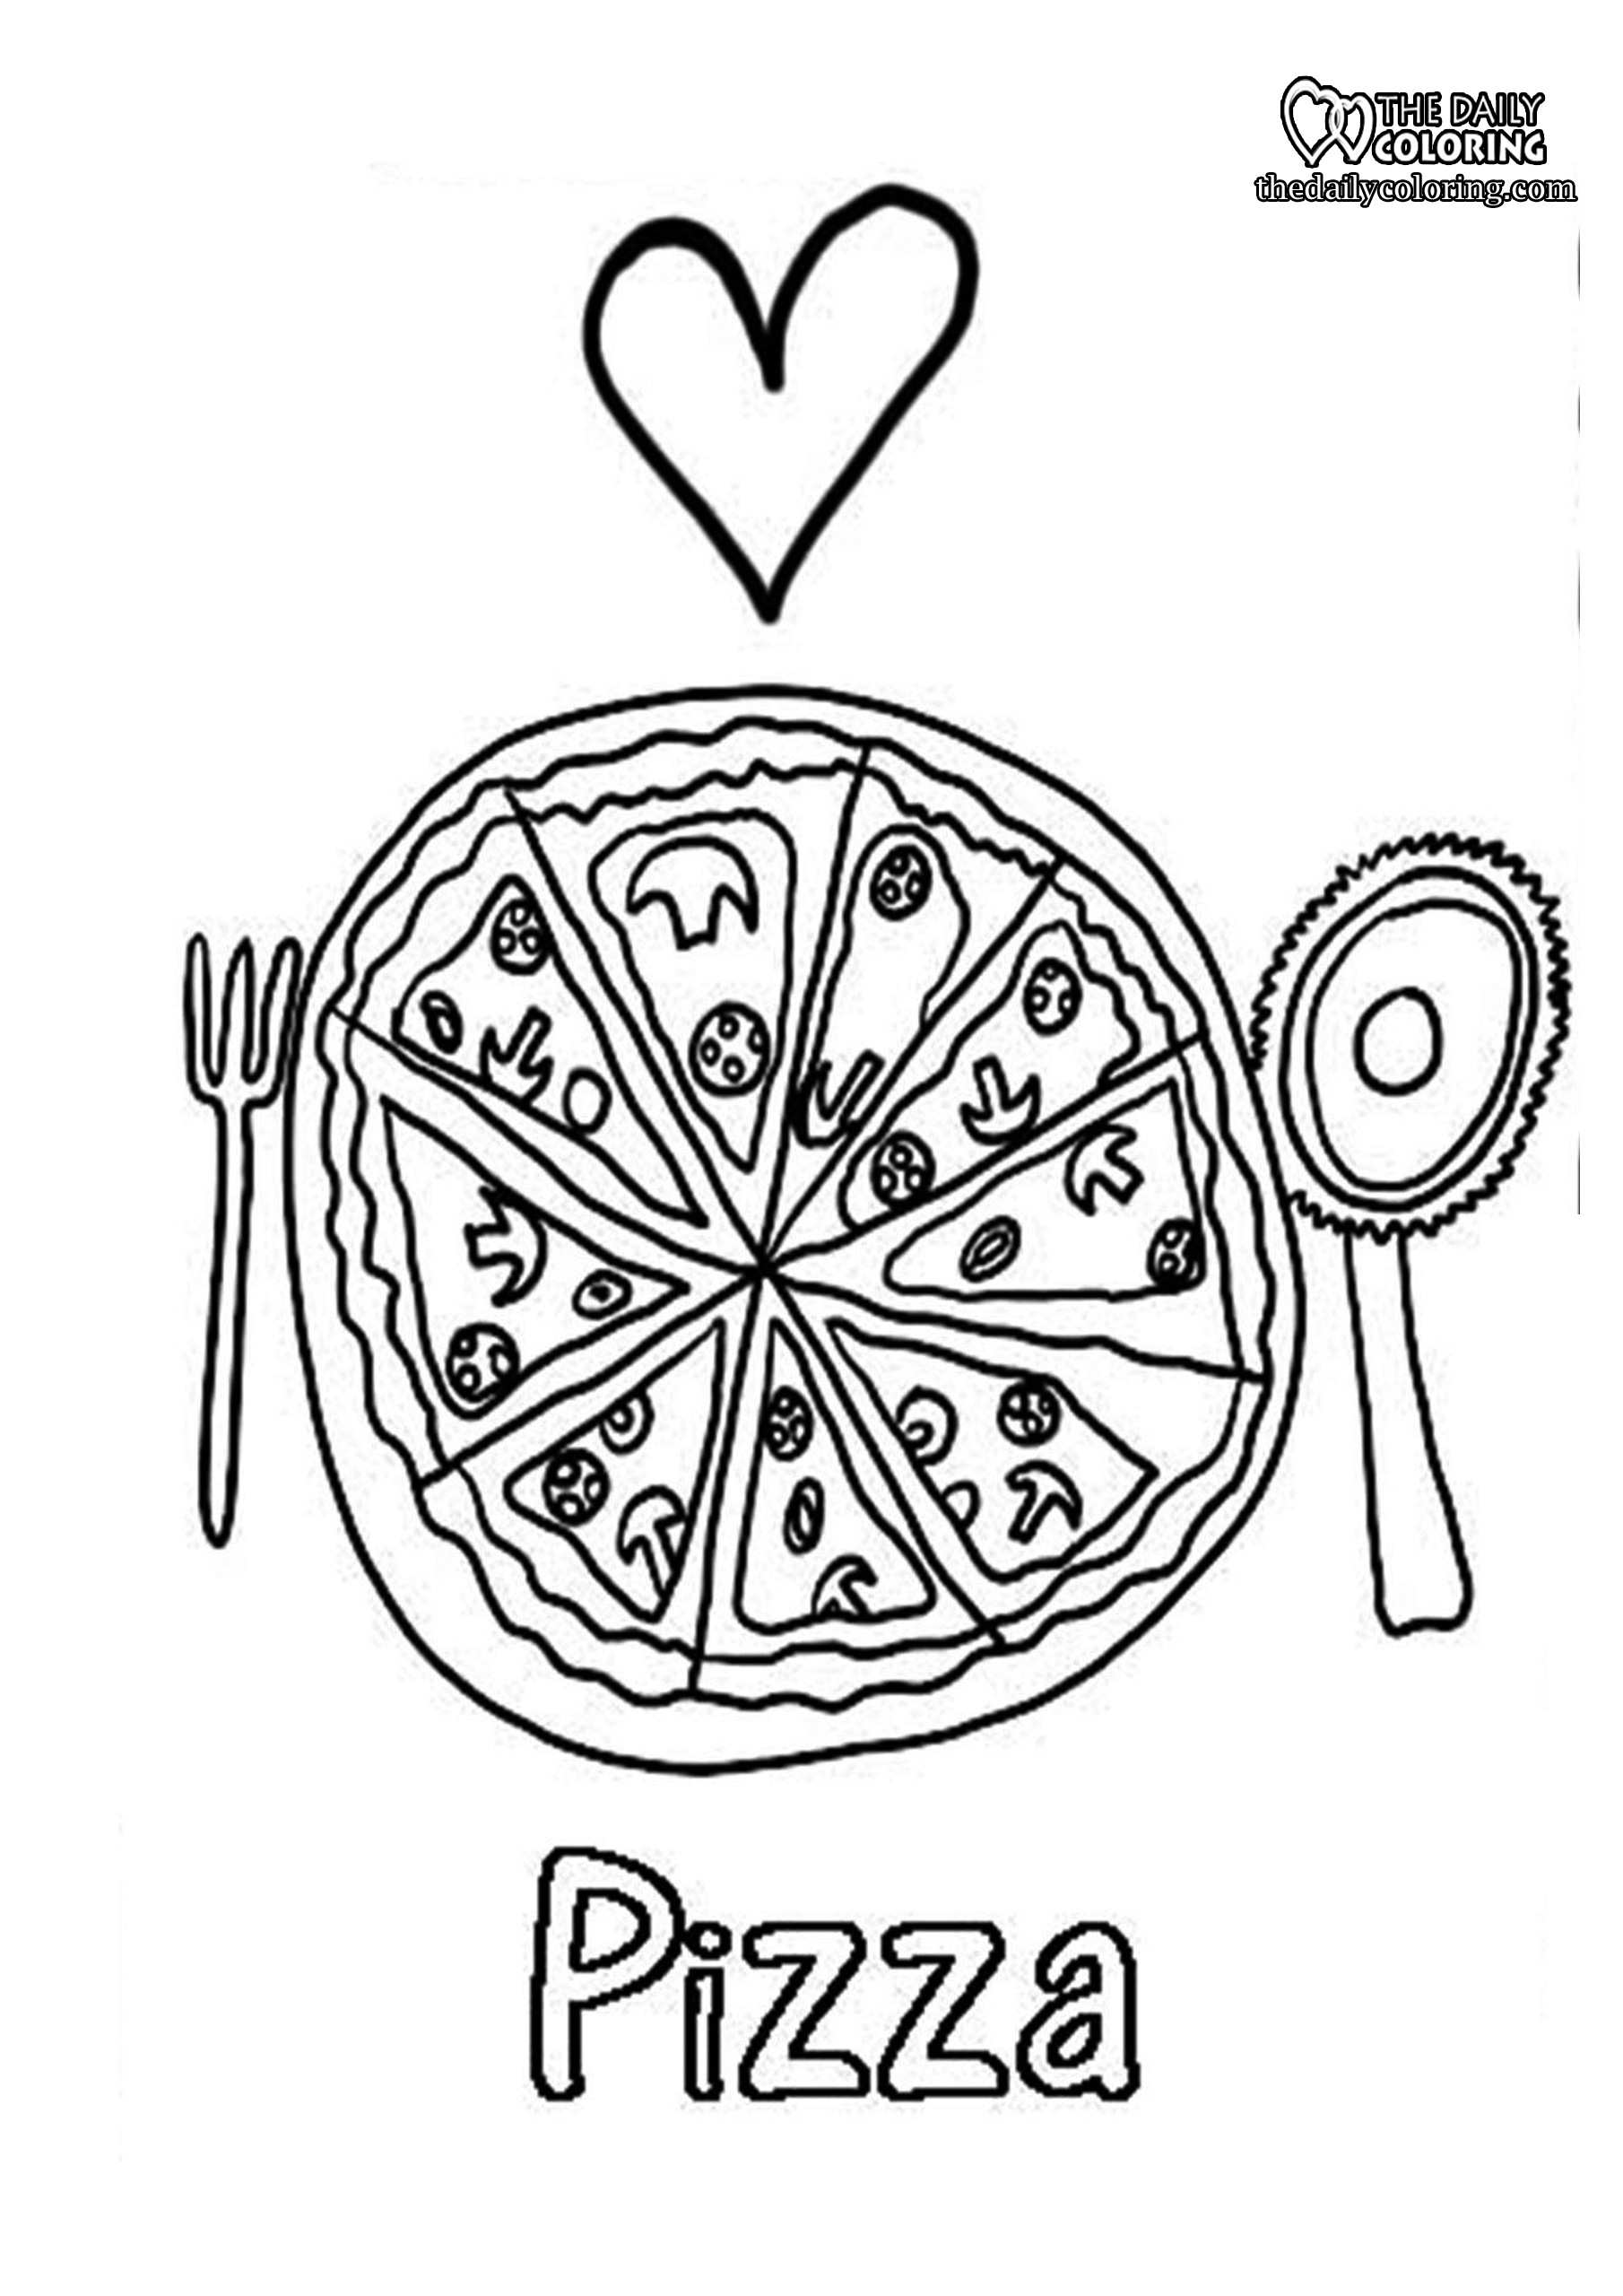 i-love-pizza-coloring-pages